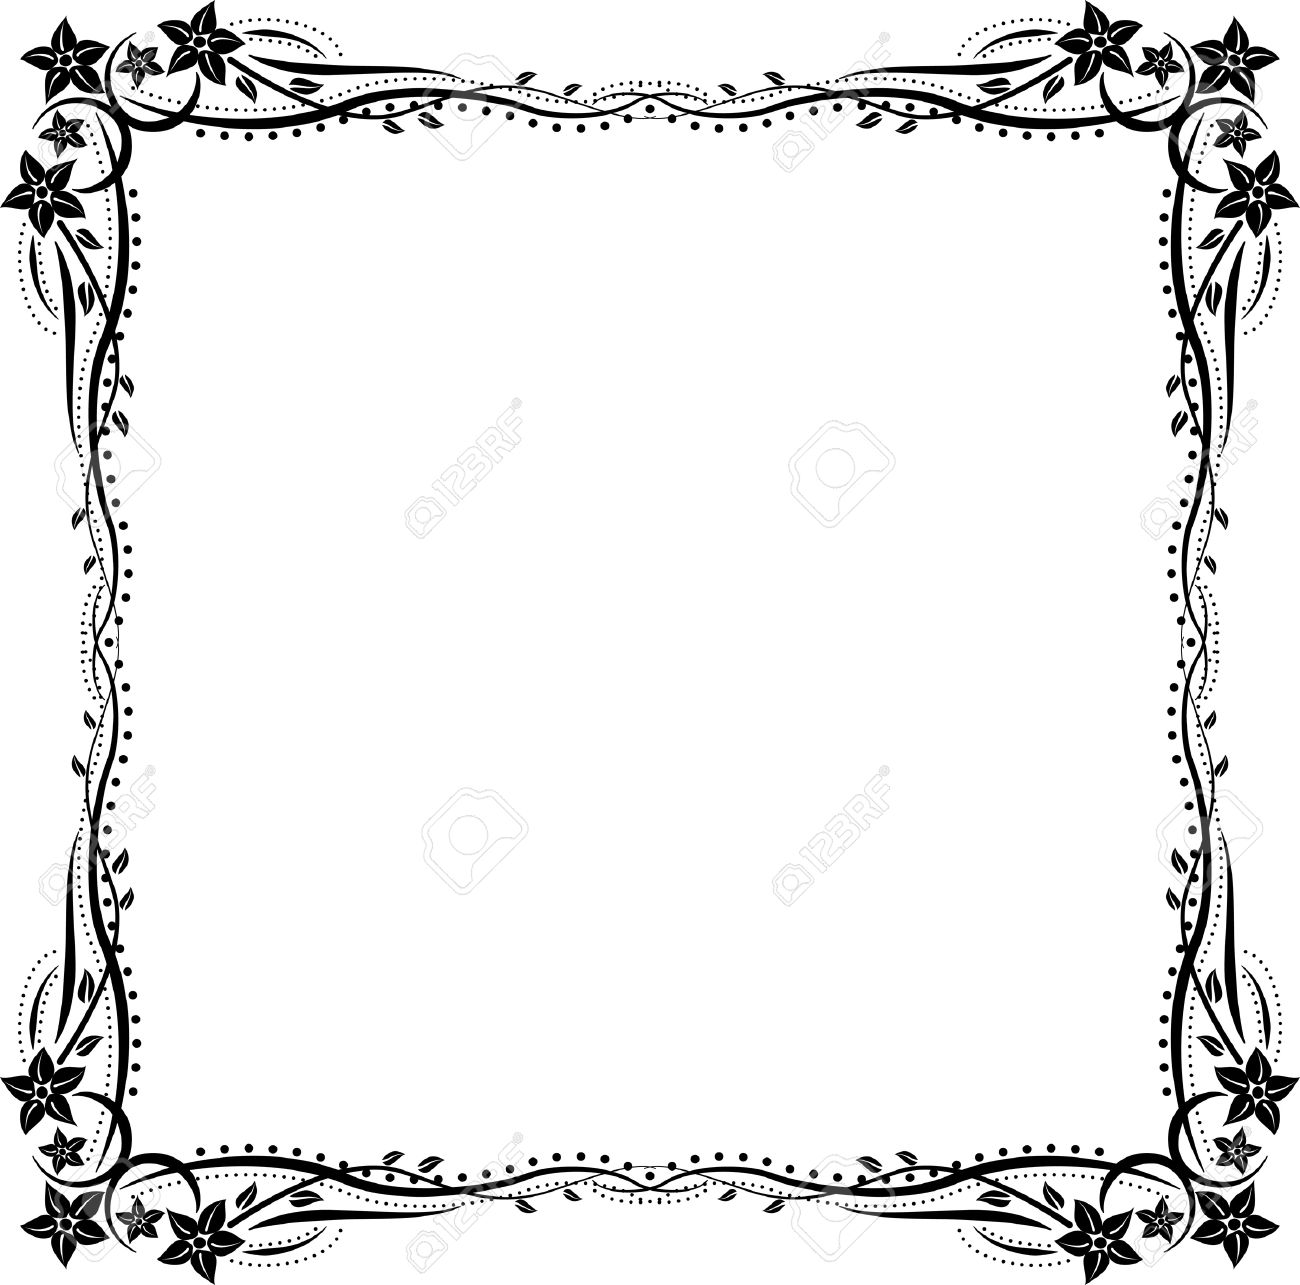 Silhouette Frame With Floral Ornaments Royalty Free Cliparts ...